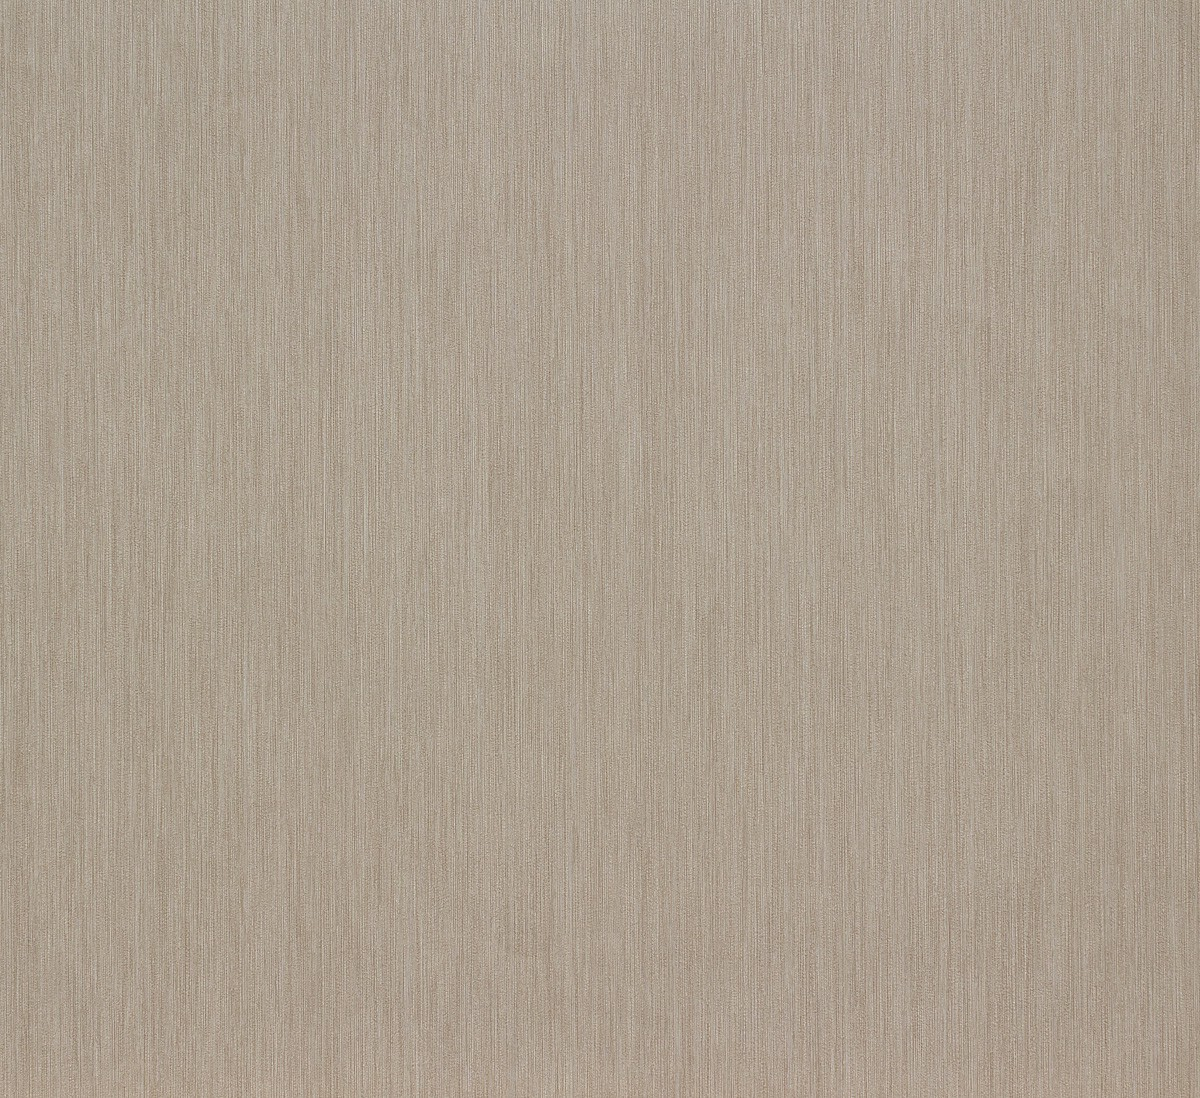 Tapete vlies streifen beige marburg attitude 56244 for Tapete beige